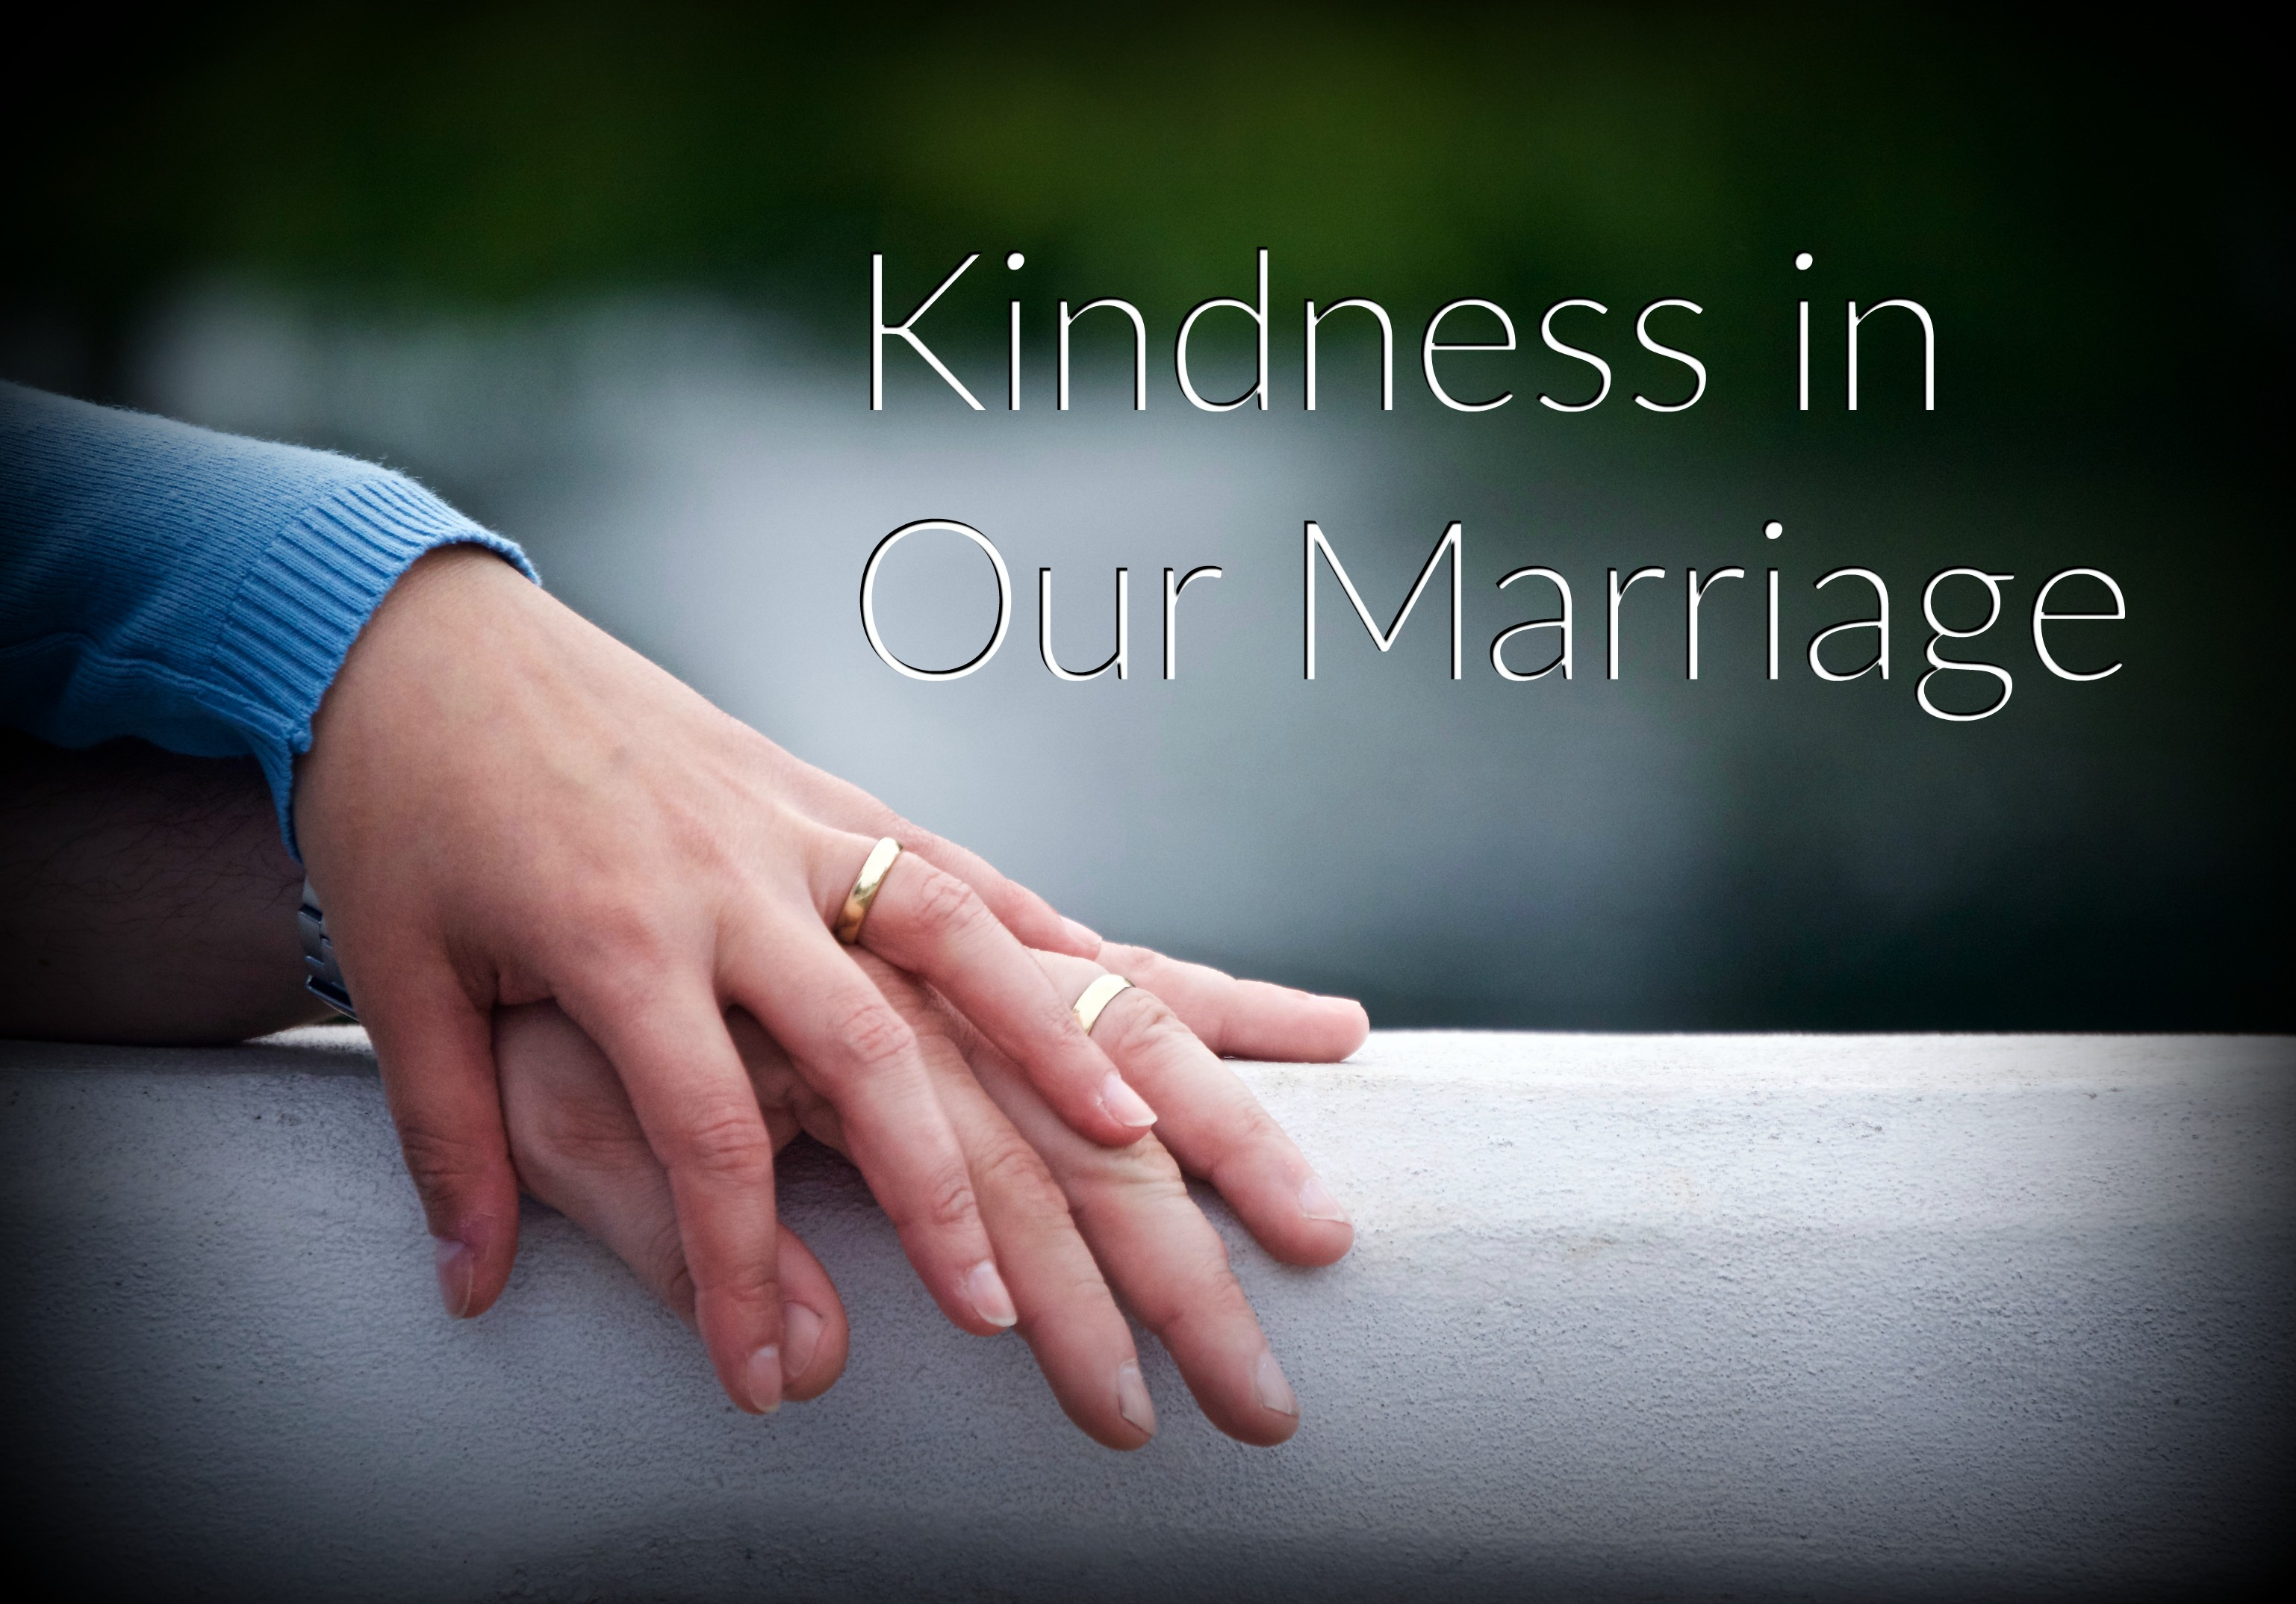 Kindness in Our Marriage